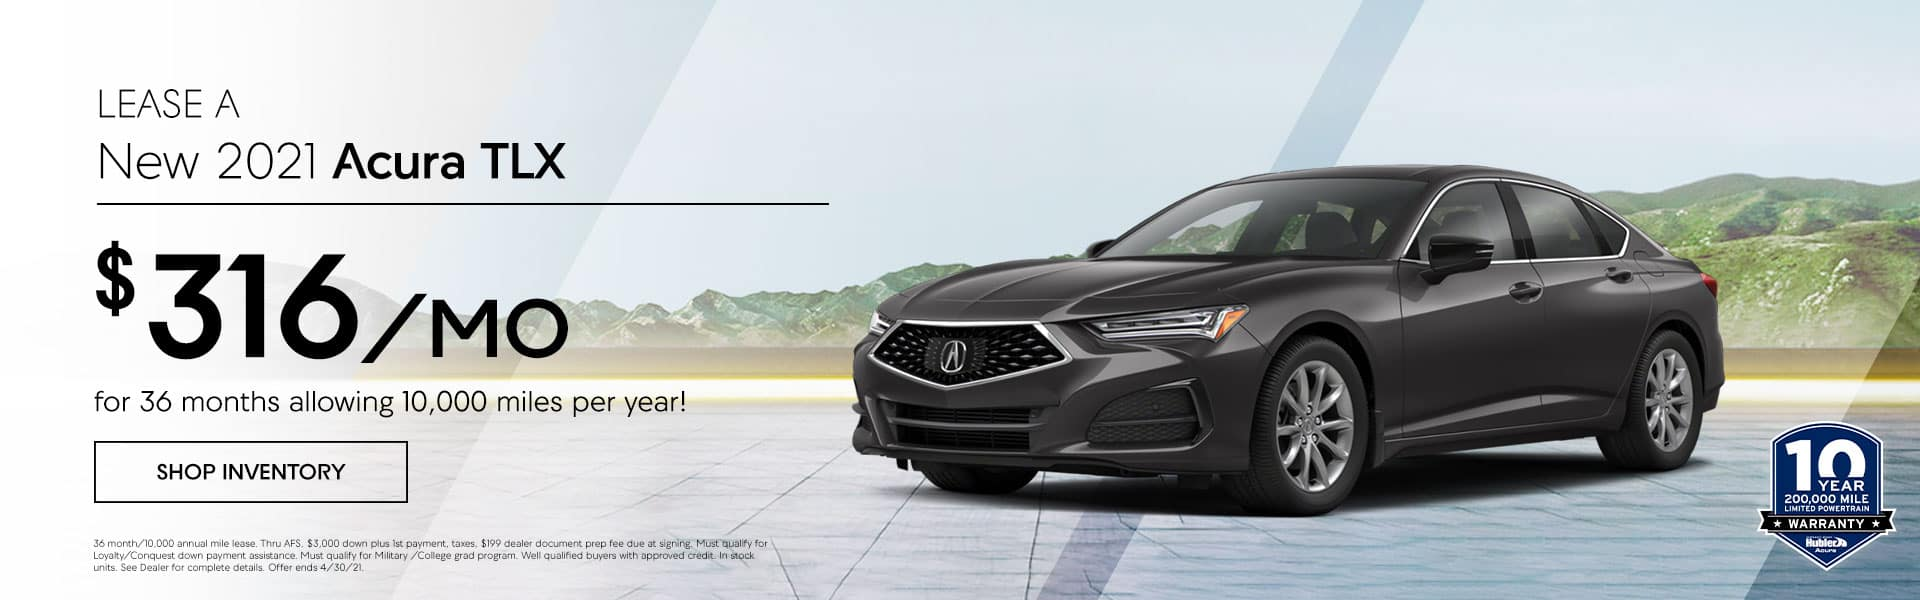 2021 Acura TLX just $ 316.00 per month, Allowing 10,000 miles per year!